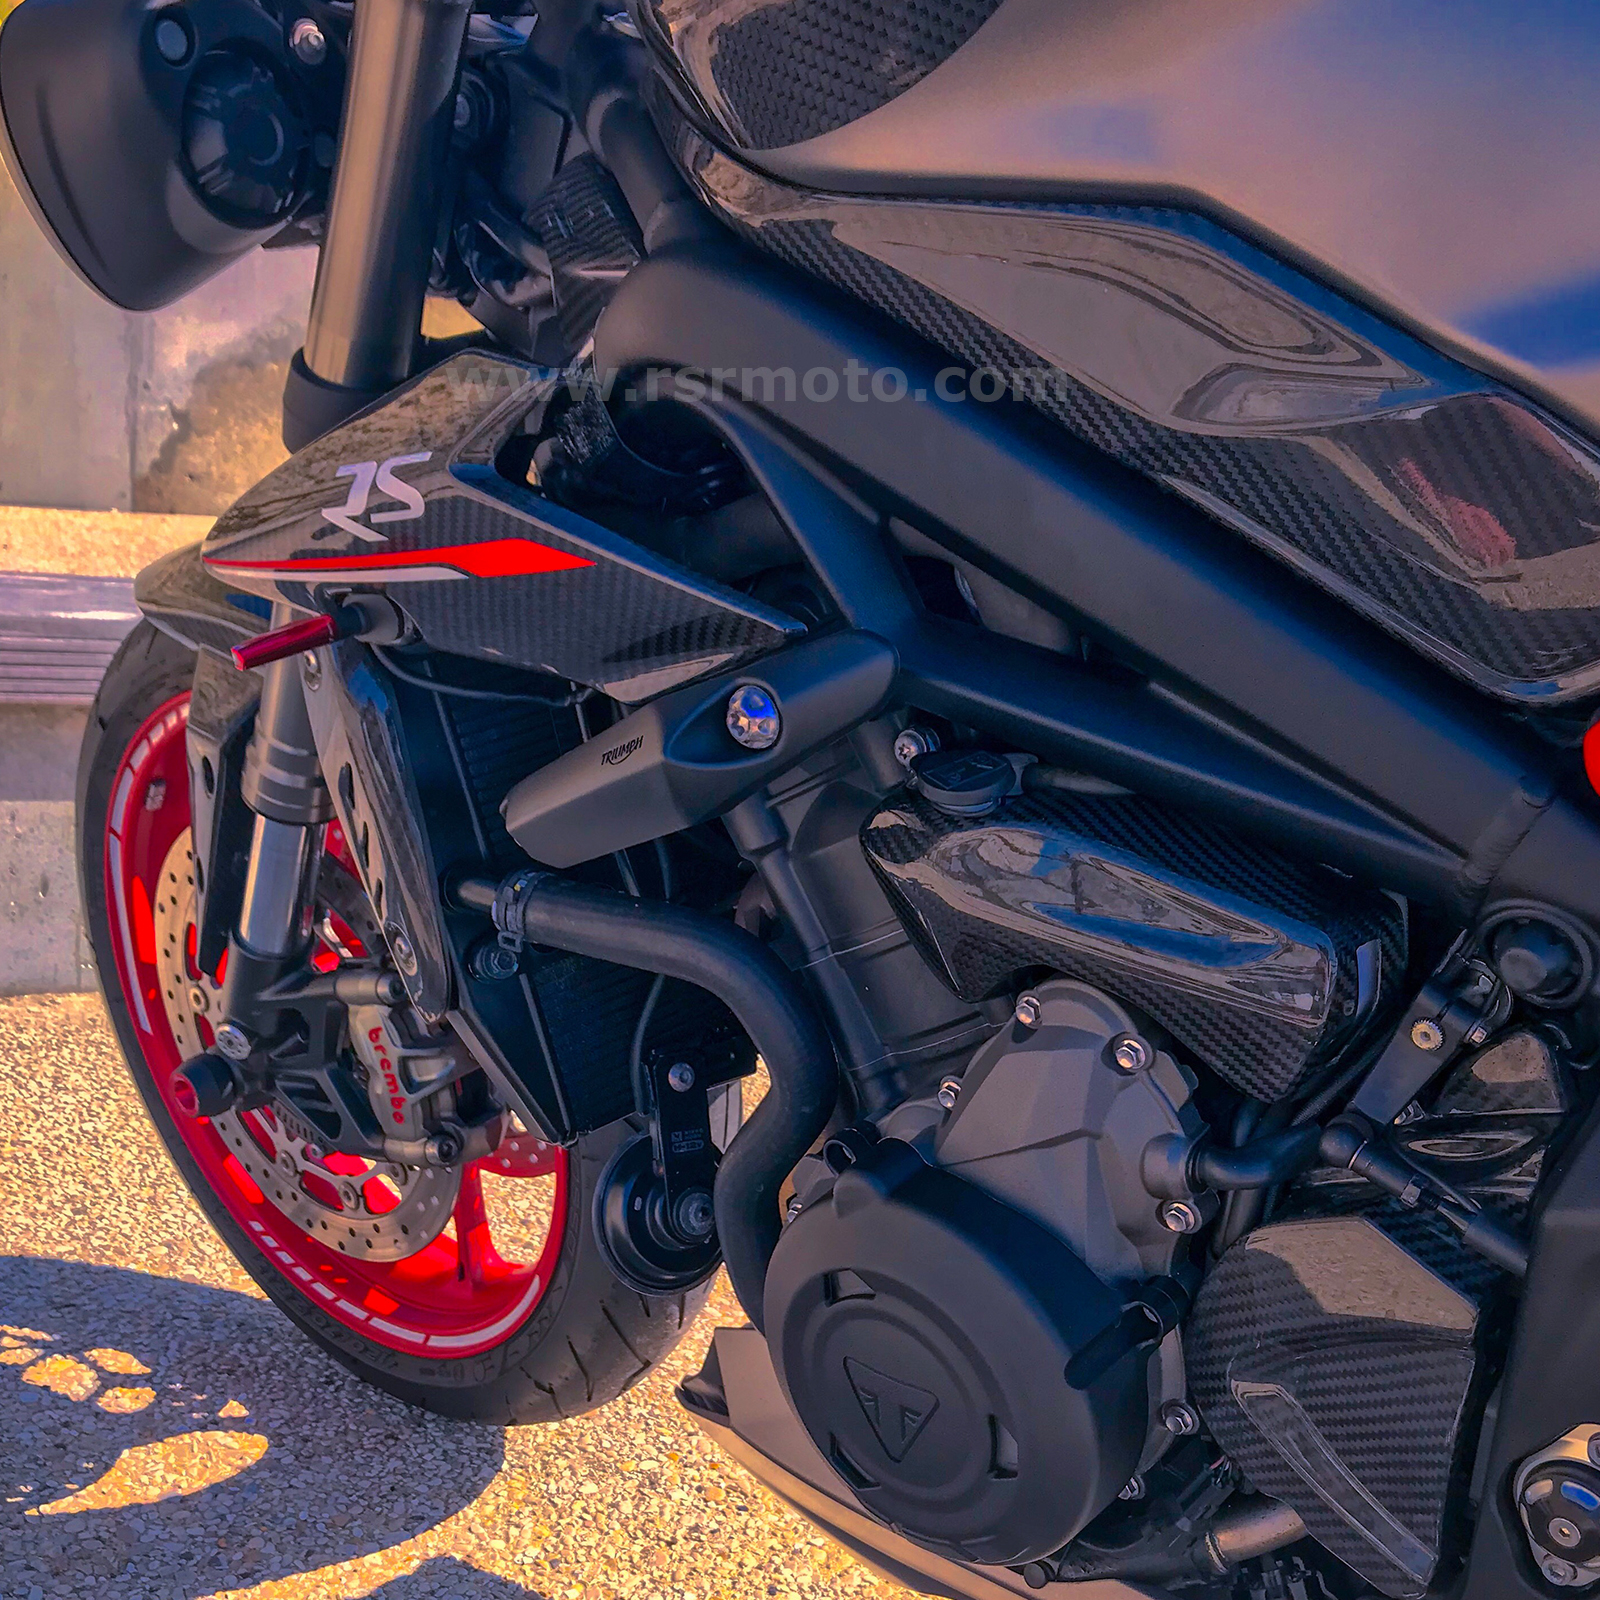 triumph-street-triple-carbon-fibre-side-panels.jpg